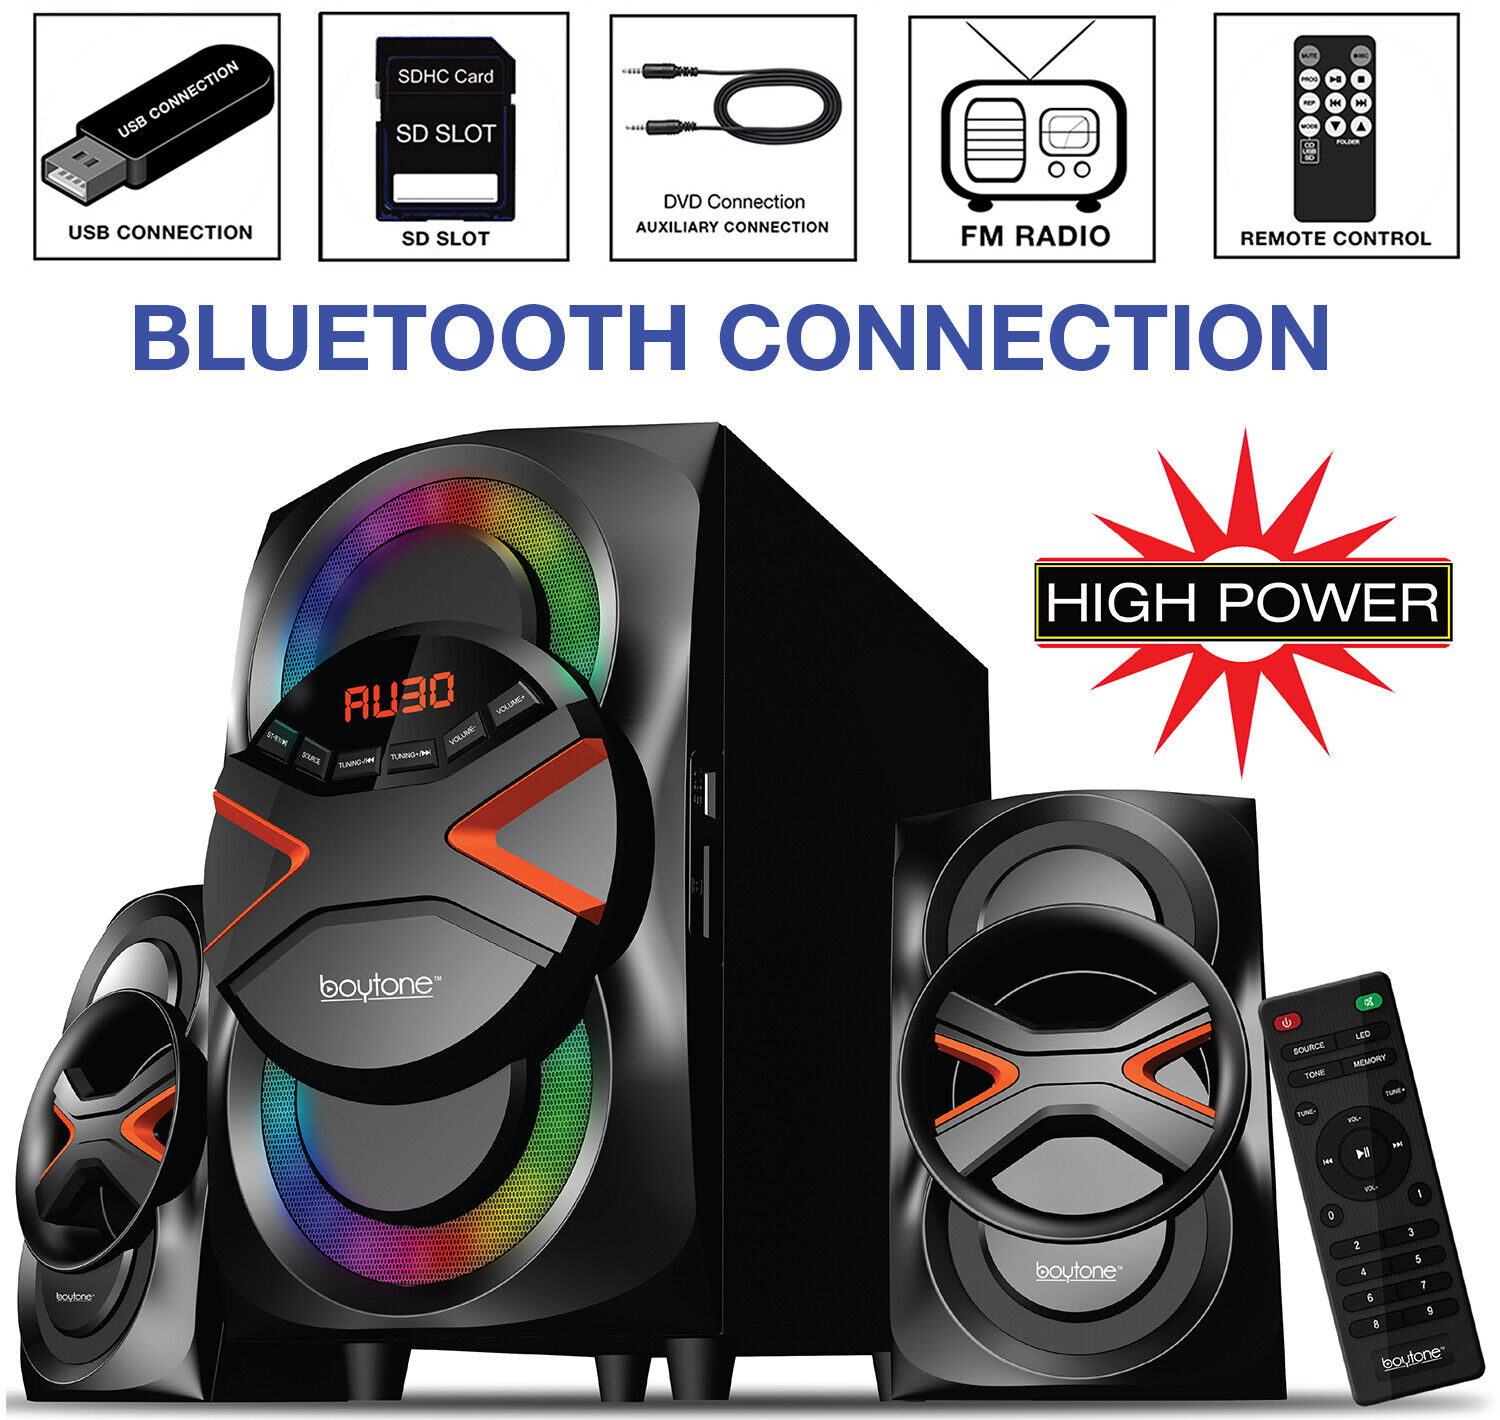 Boytone BT626F 2.1 Bluetooth Powerful Home Theater Speaker System FM Radio